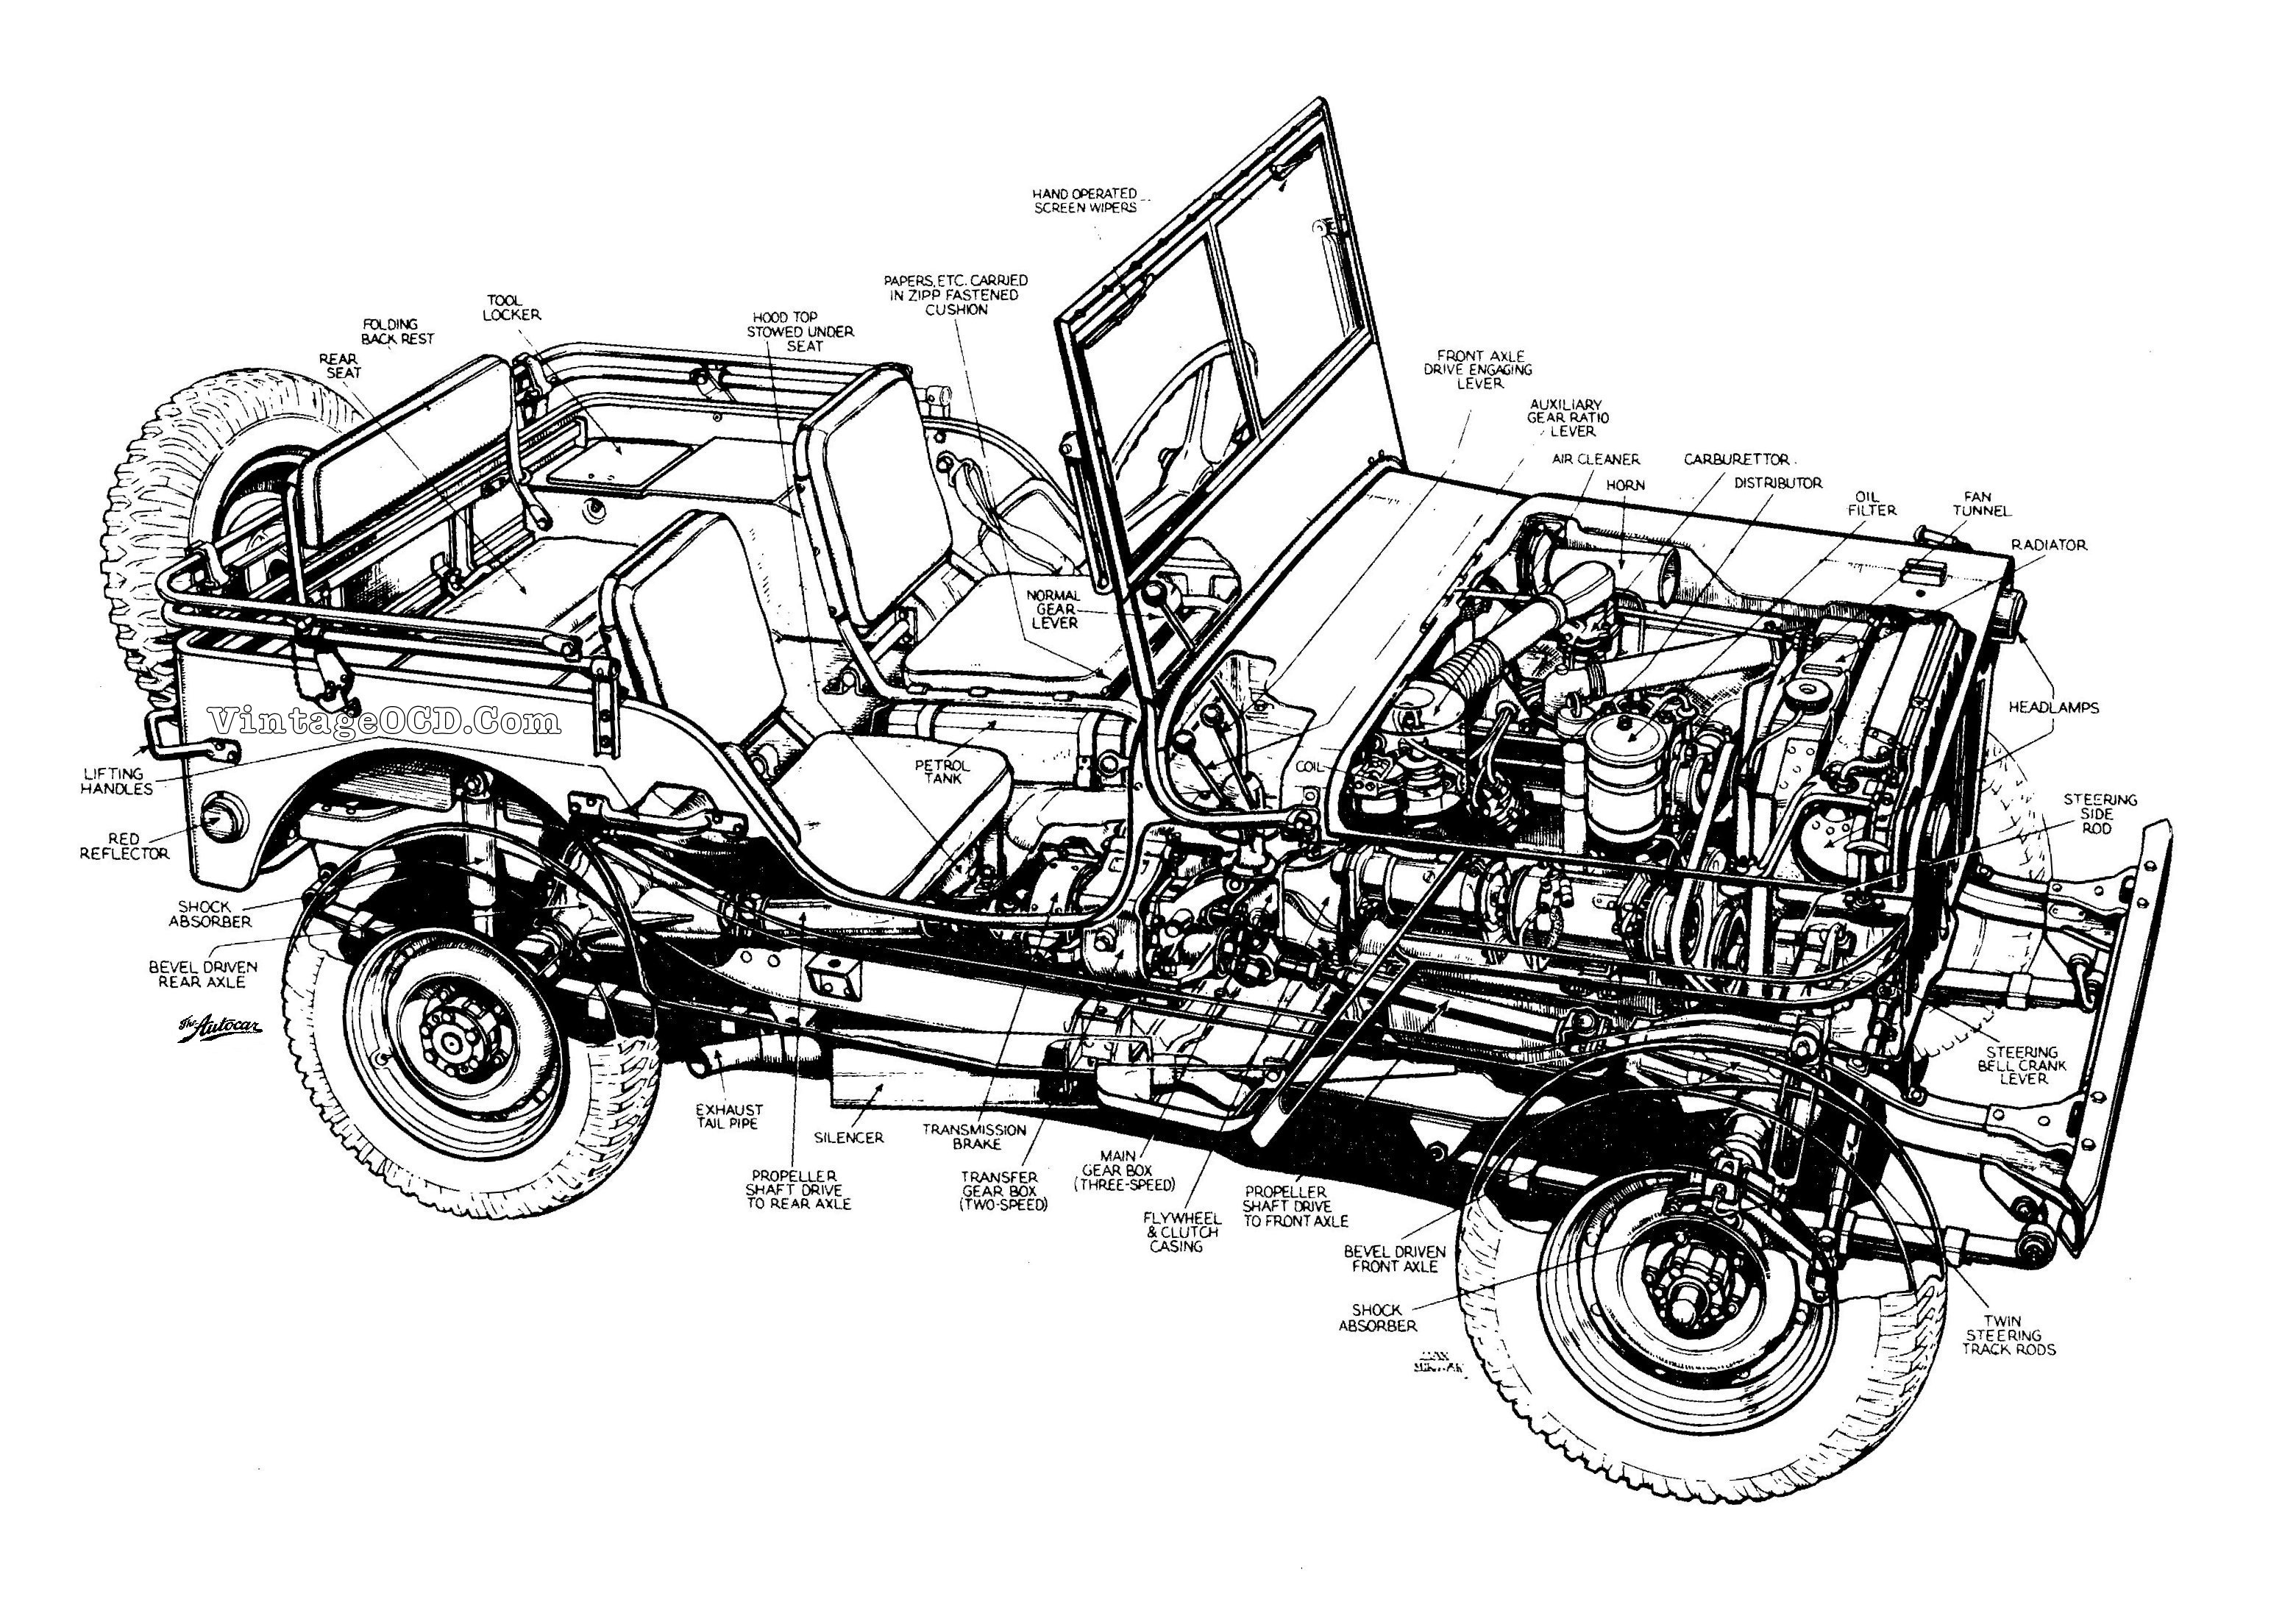 [WRG-1887] 1952 Willys Wagon Wiring Diagram